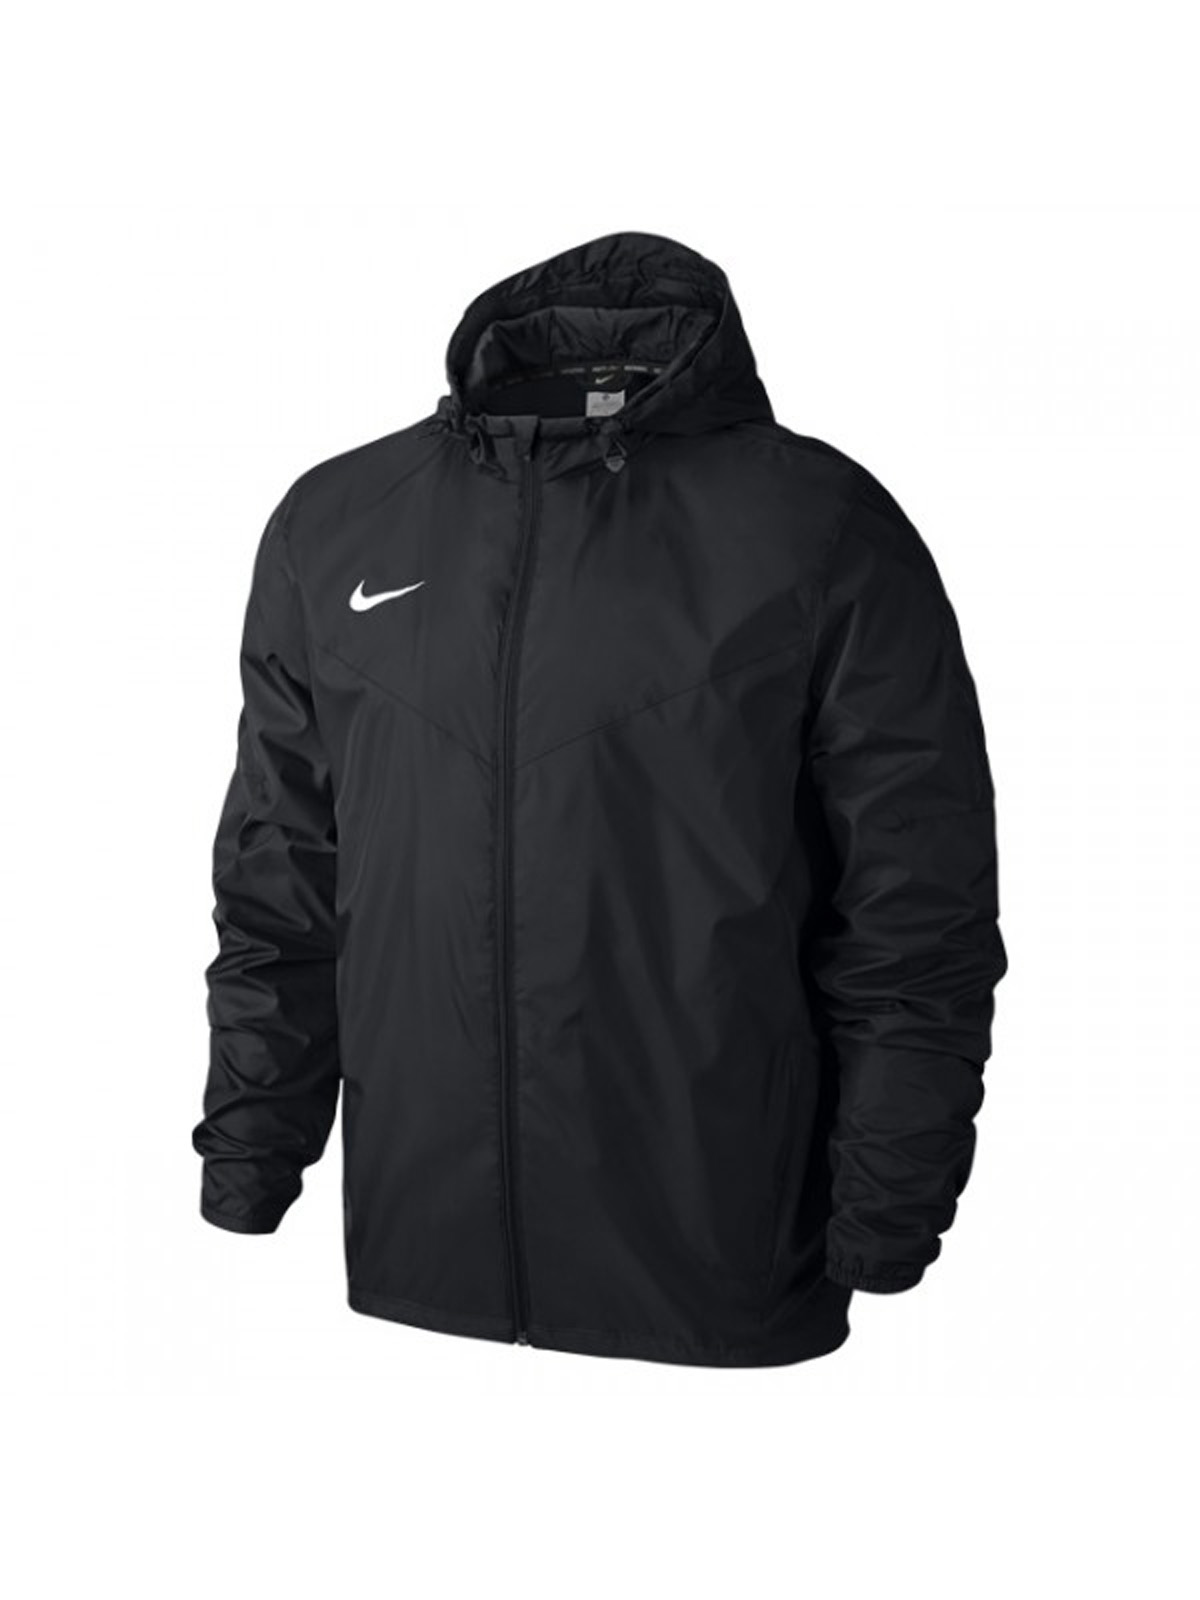 Nike team sideline men's rain jacket